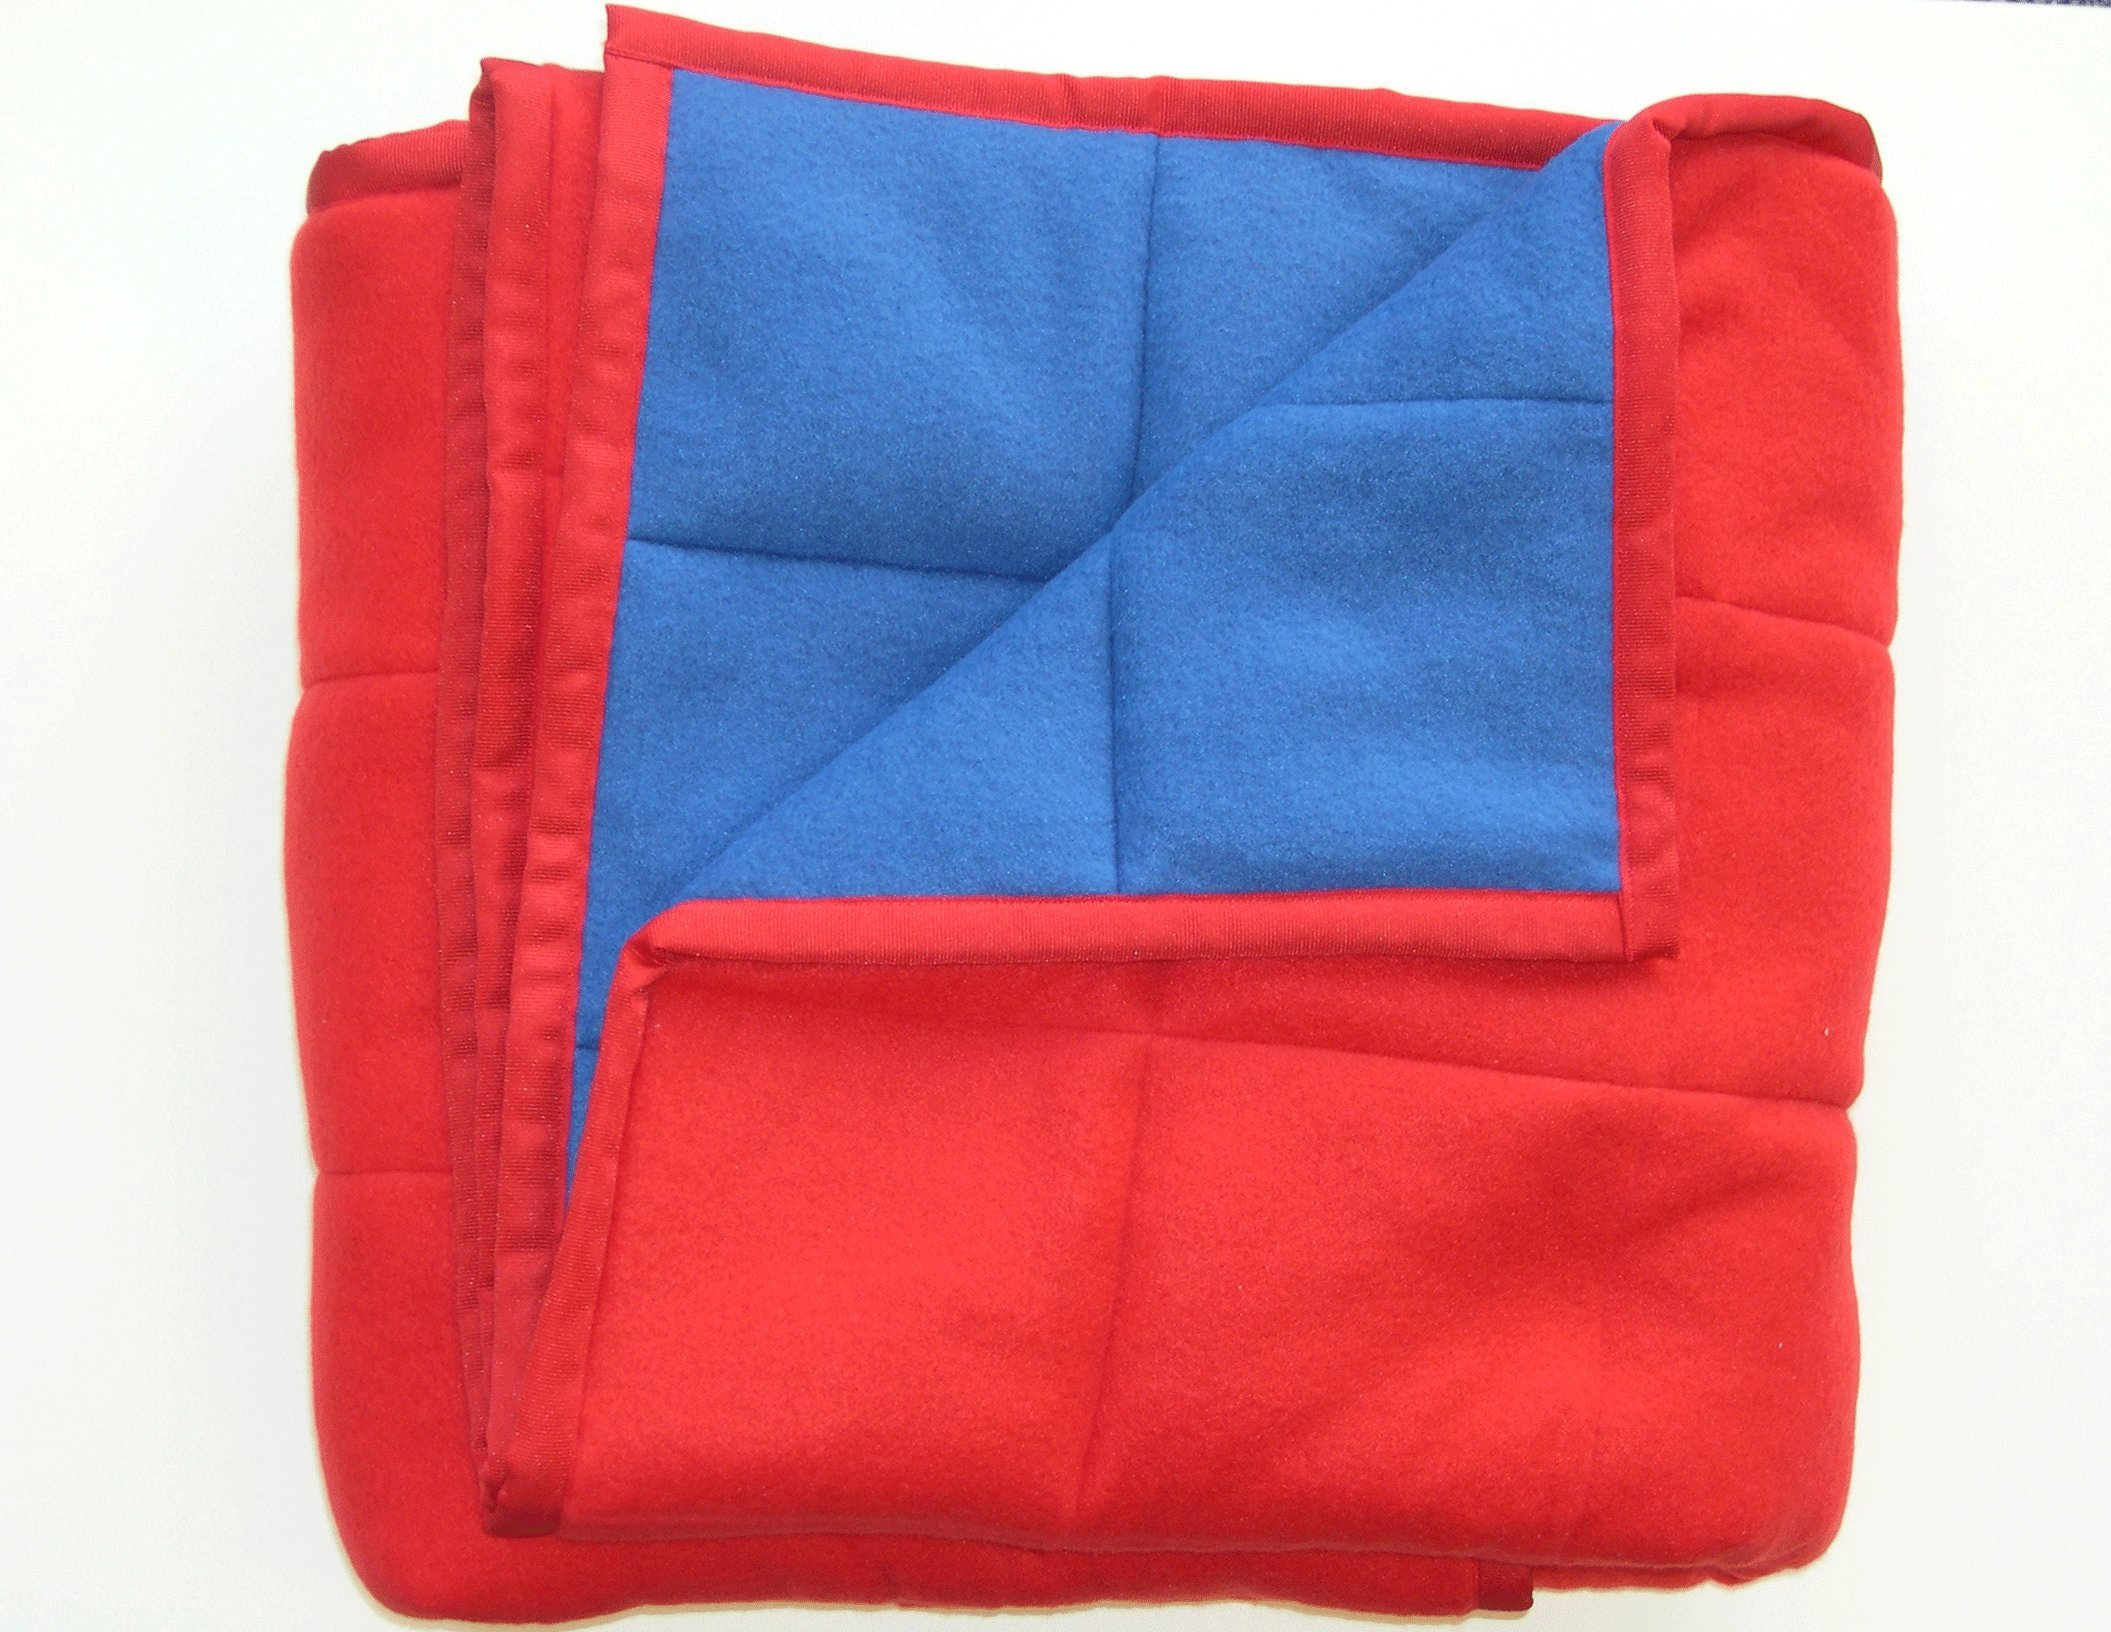 THERAPIST APPROVED PEDIATRIC WEIGHTED SENSORY BLANKET 8 LBS 45 X 60